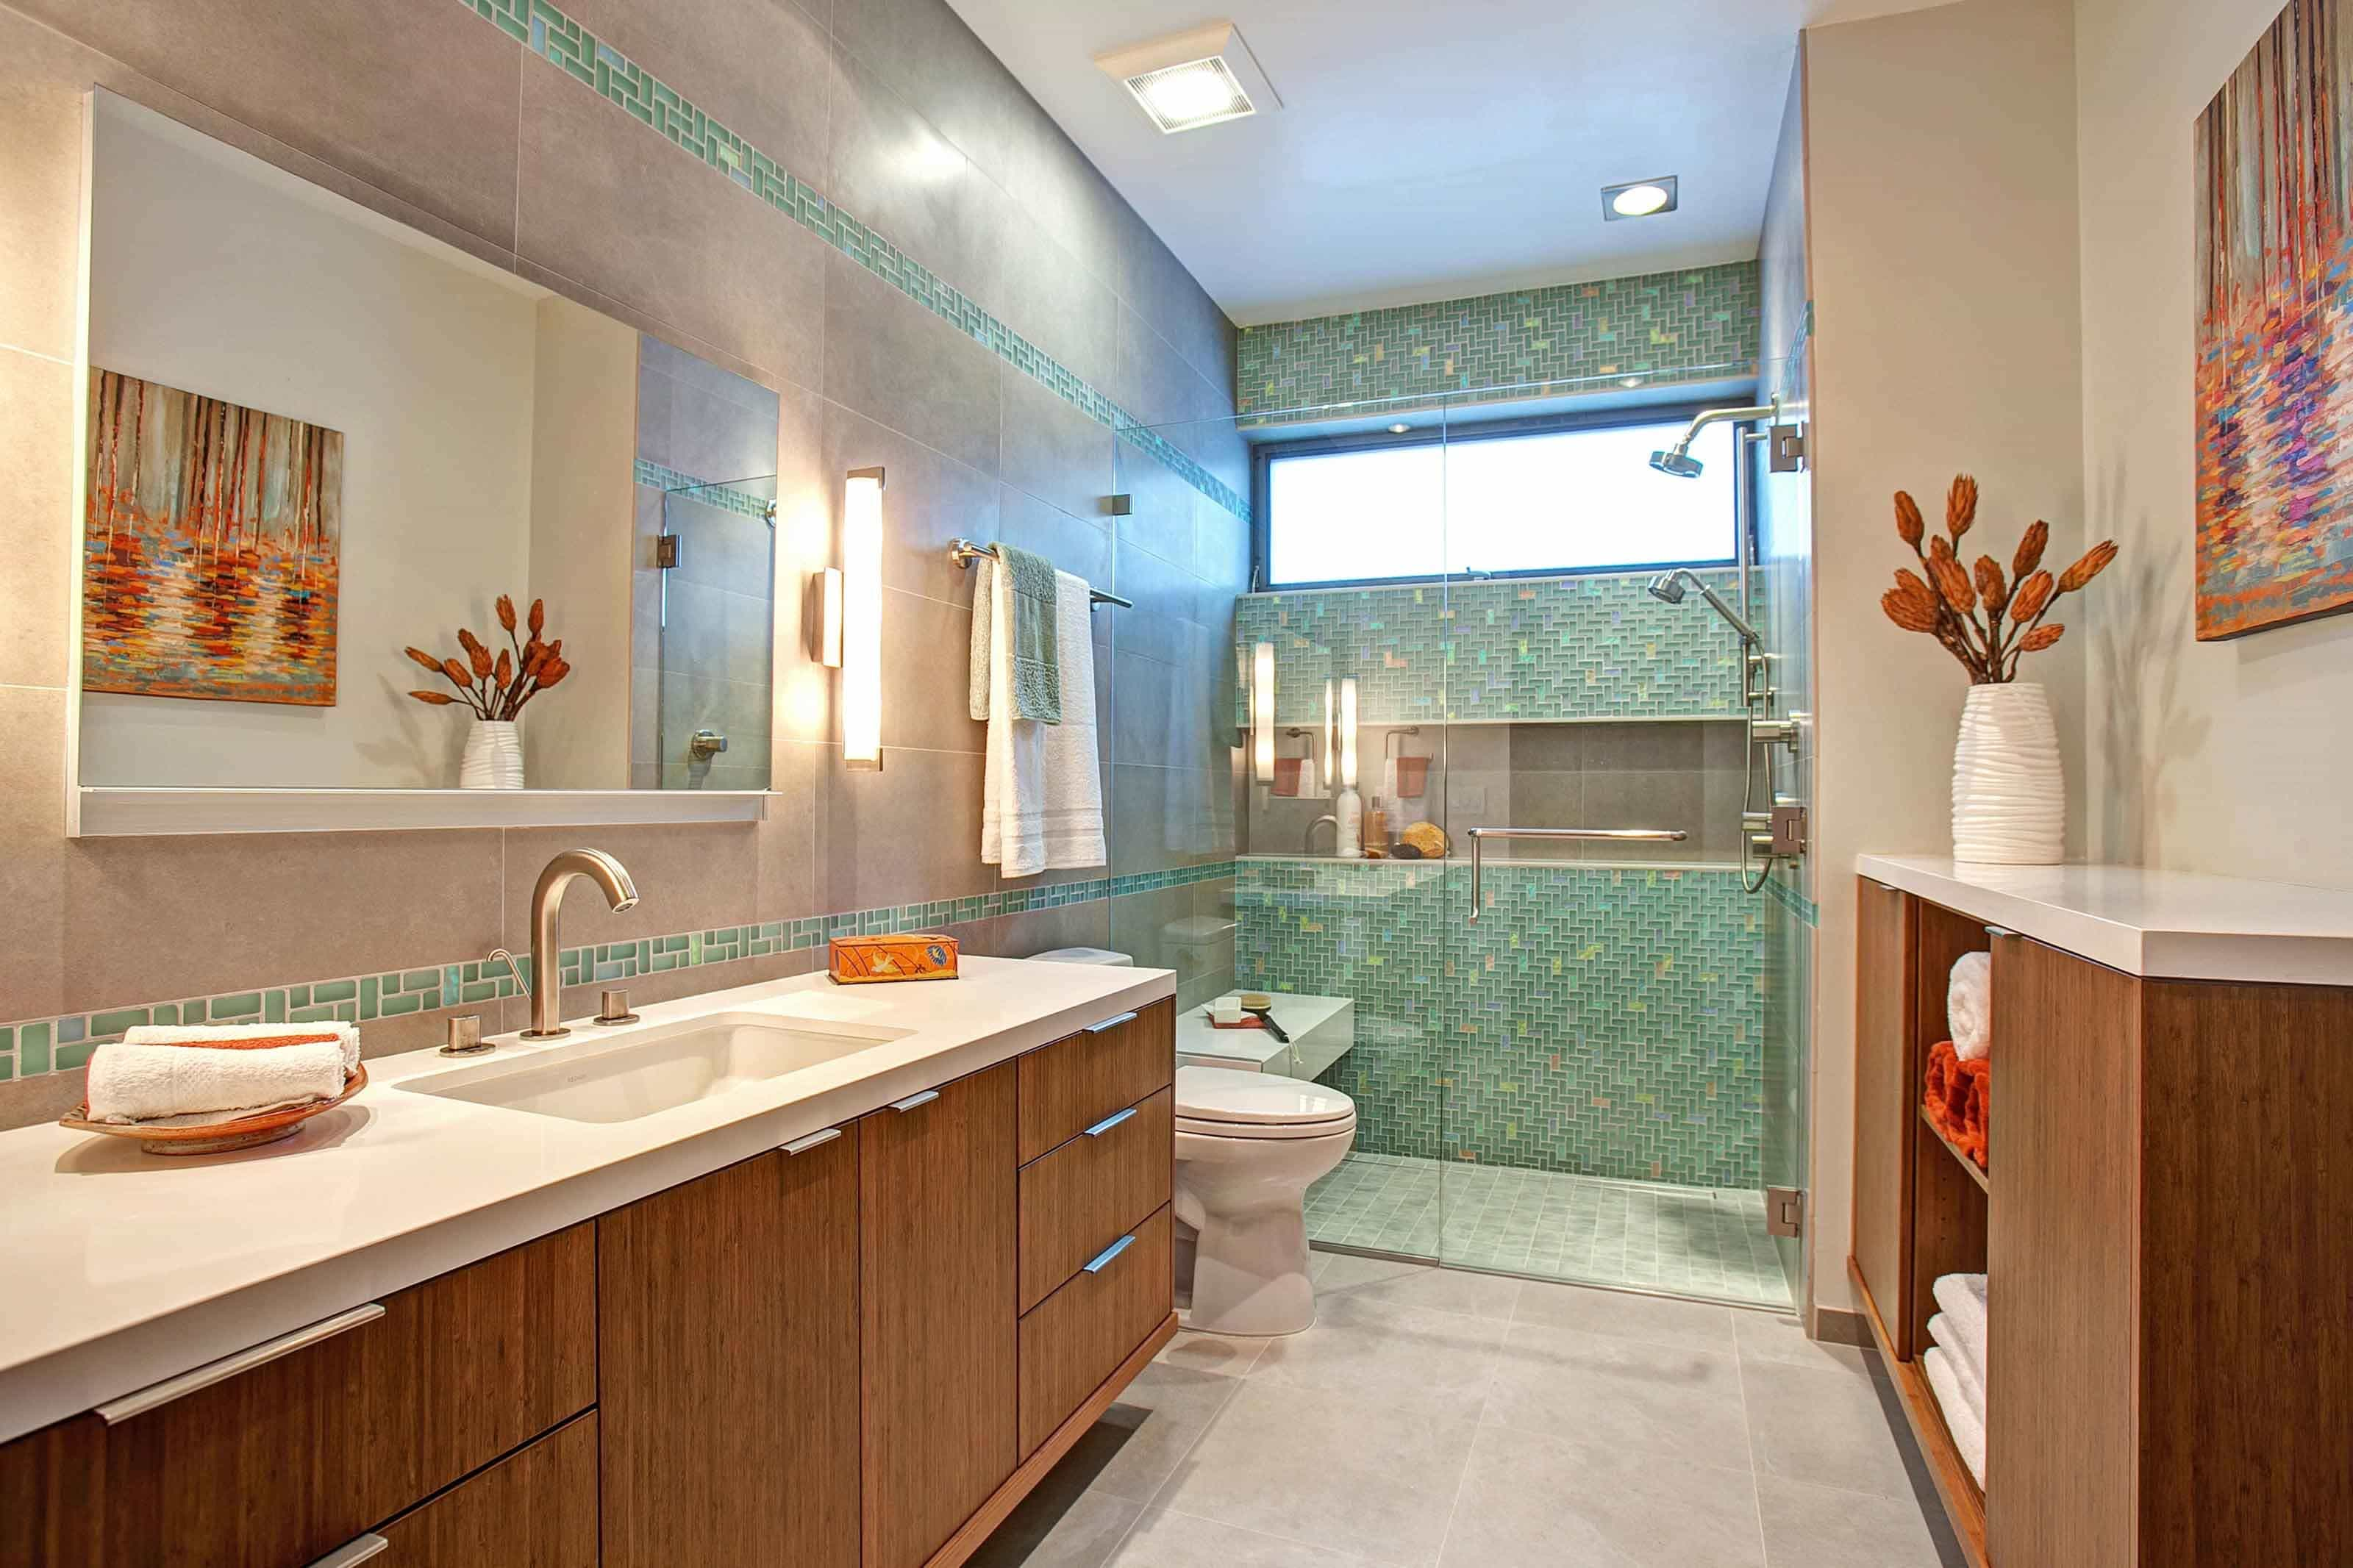 Featured Image of Bathroom And Shower With Green Ceramic Shower Wall